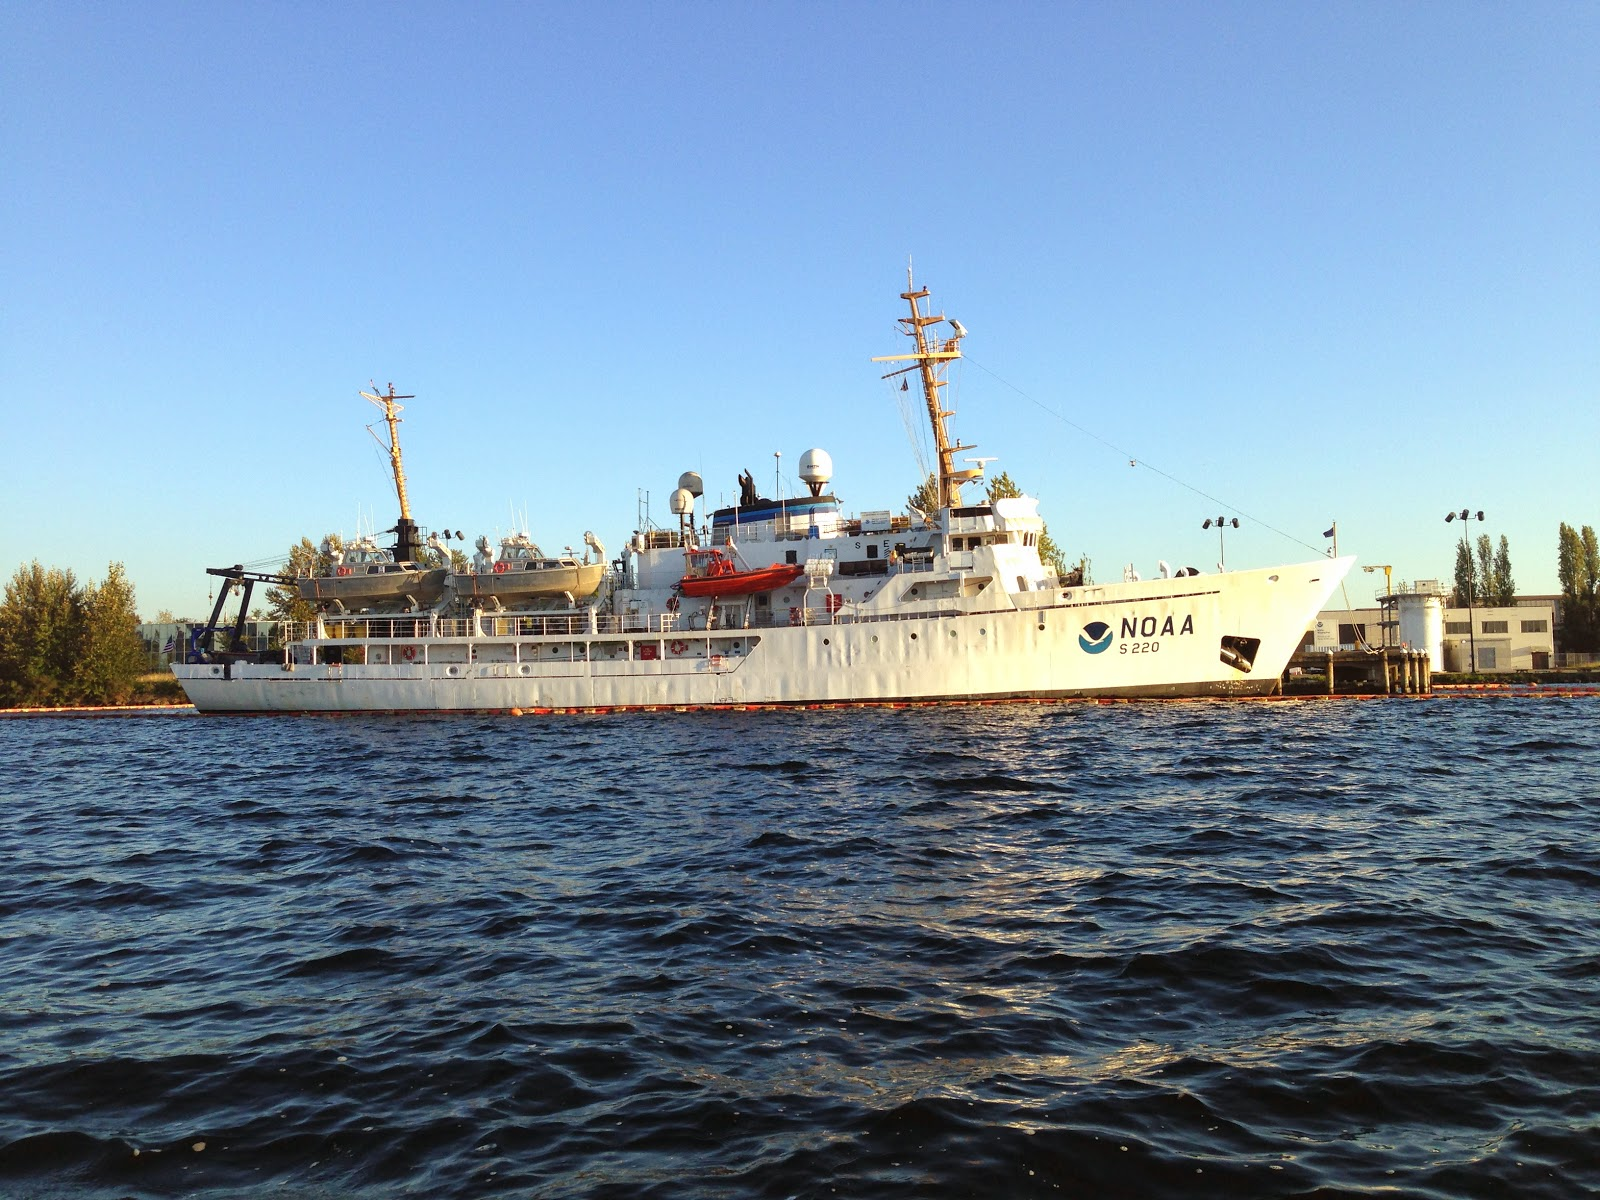 The NOAA Fairweather Hydrographic Survey Vessel